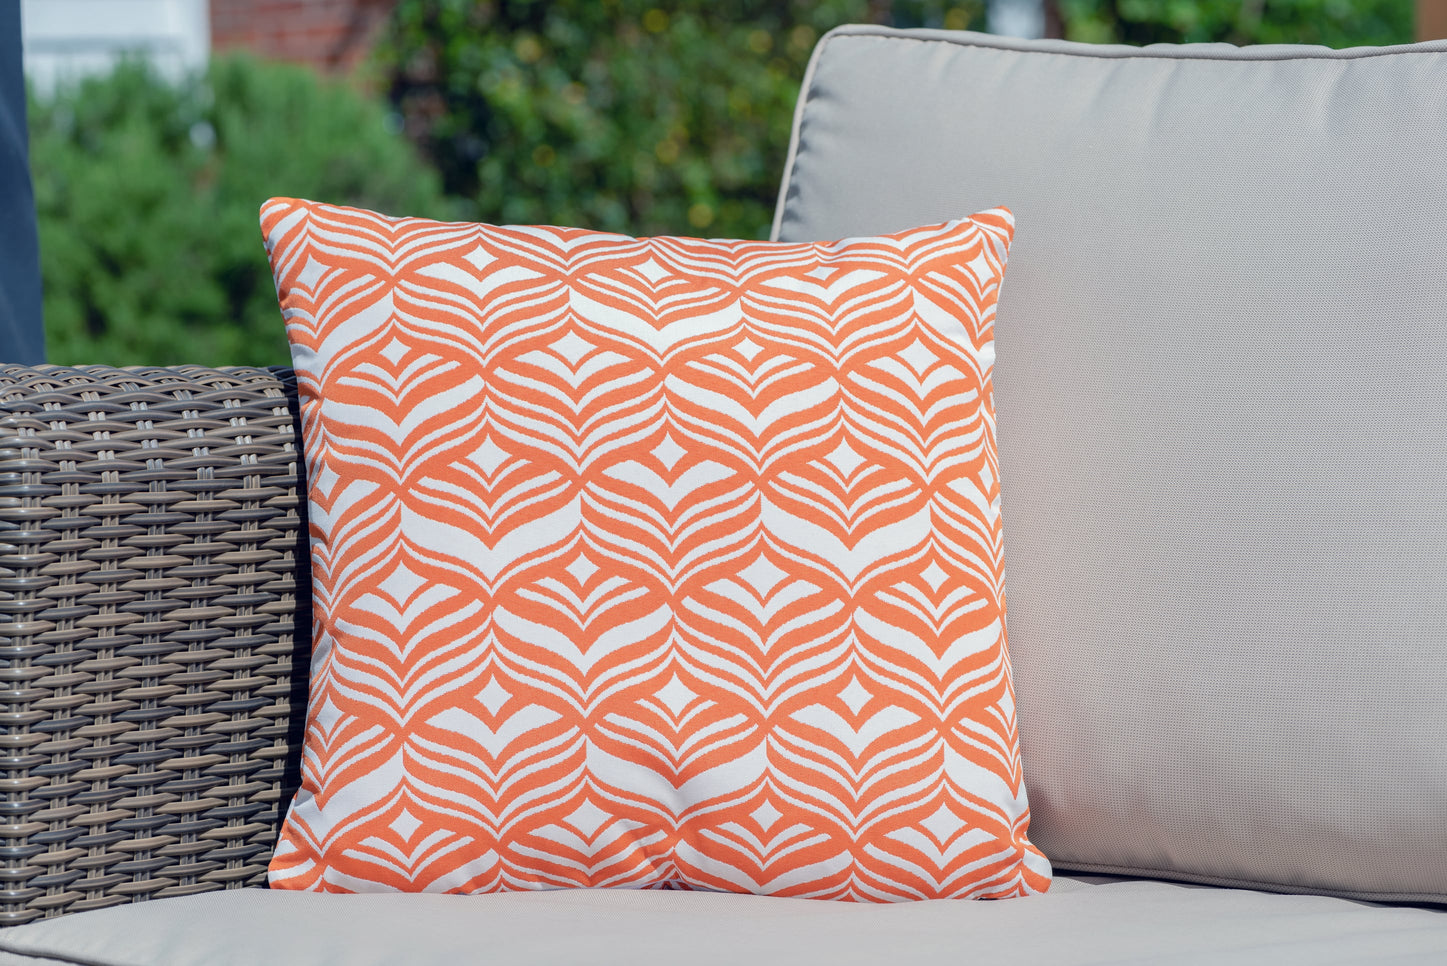 Luxury Cushion in Tulip Orange Bean Bag Cushion armadillosun